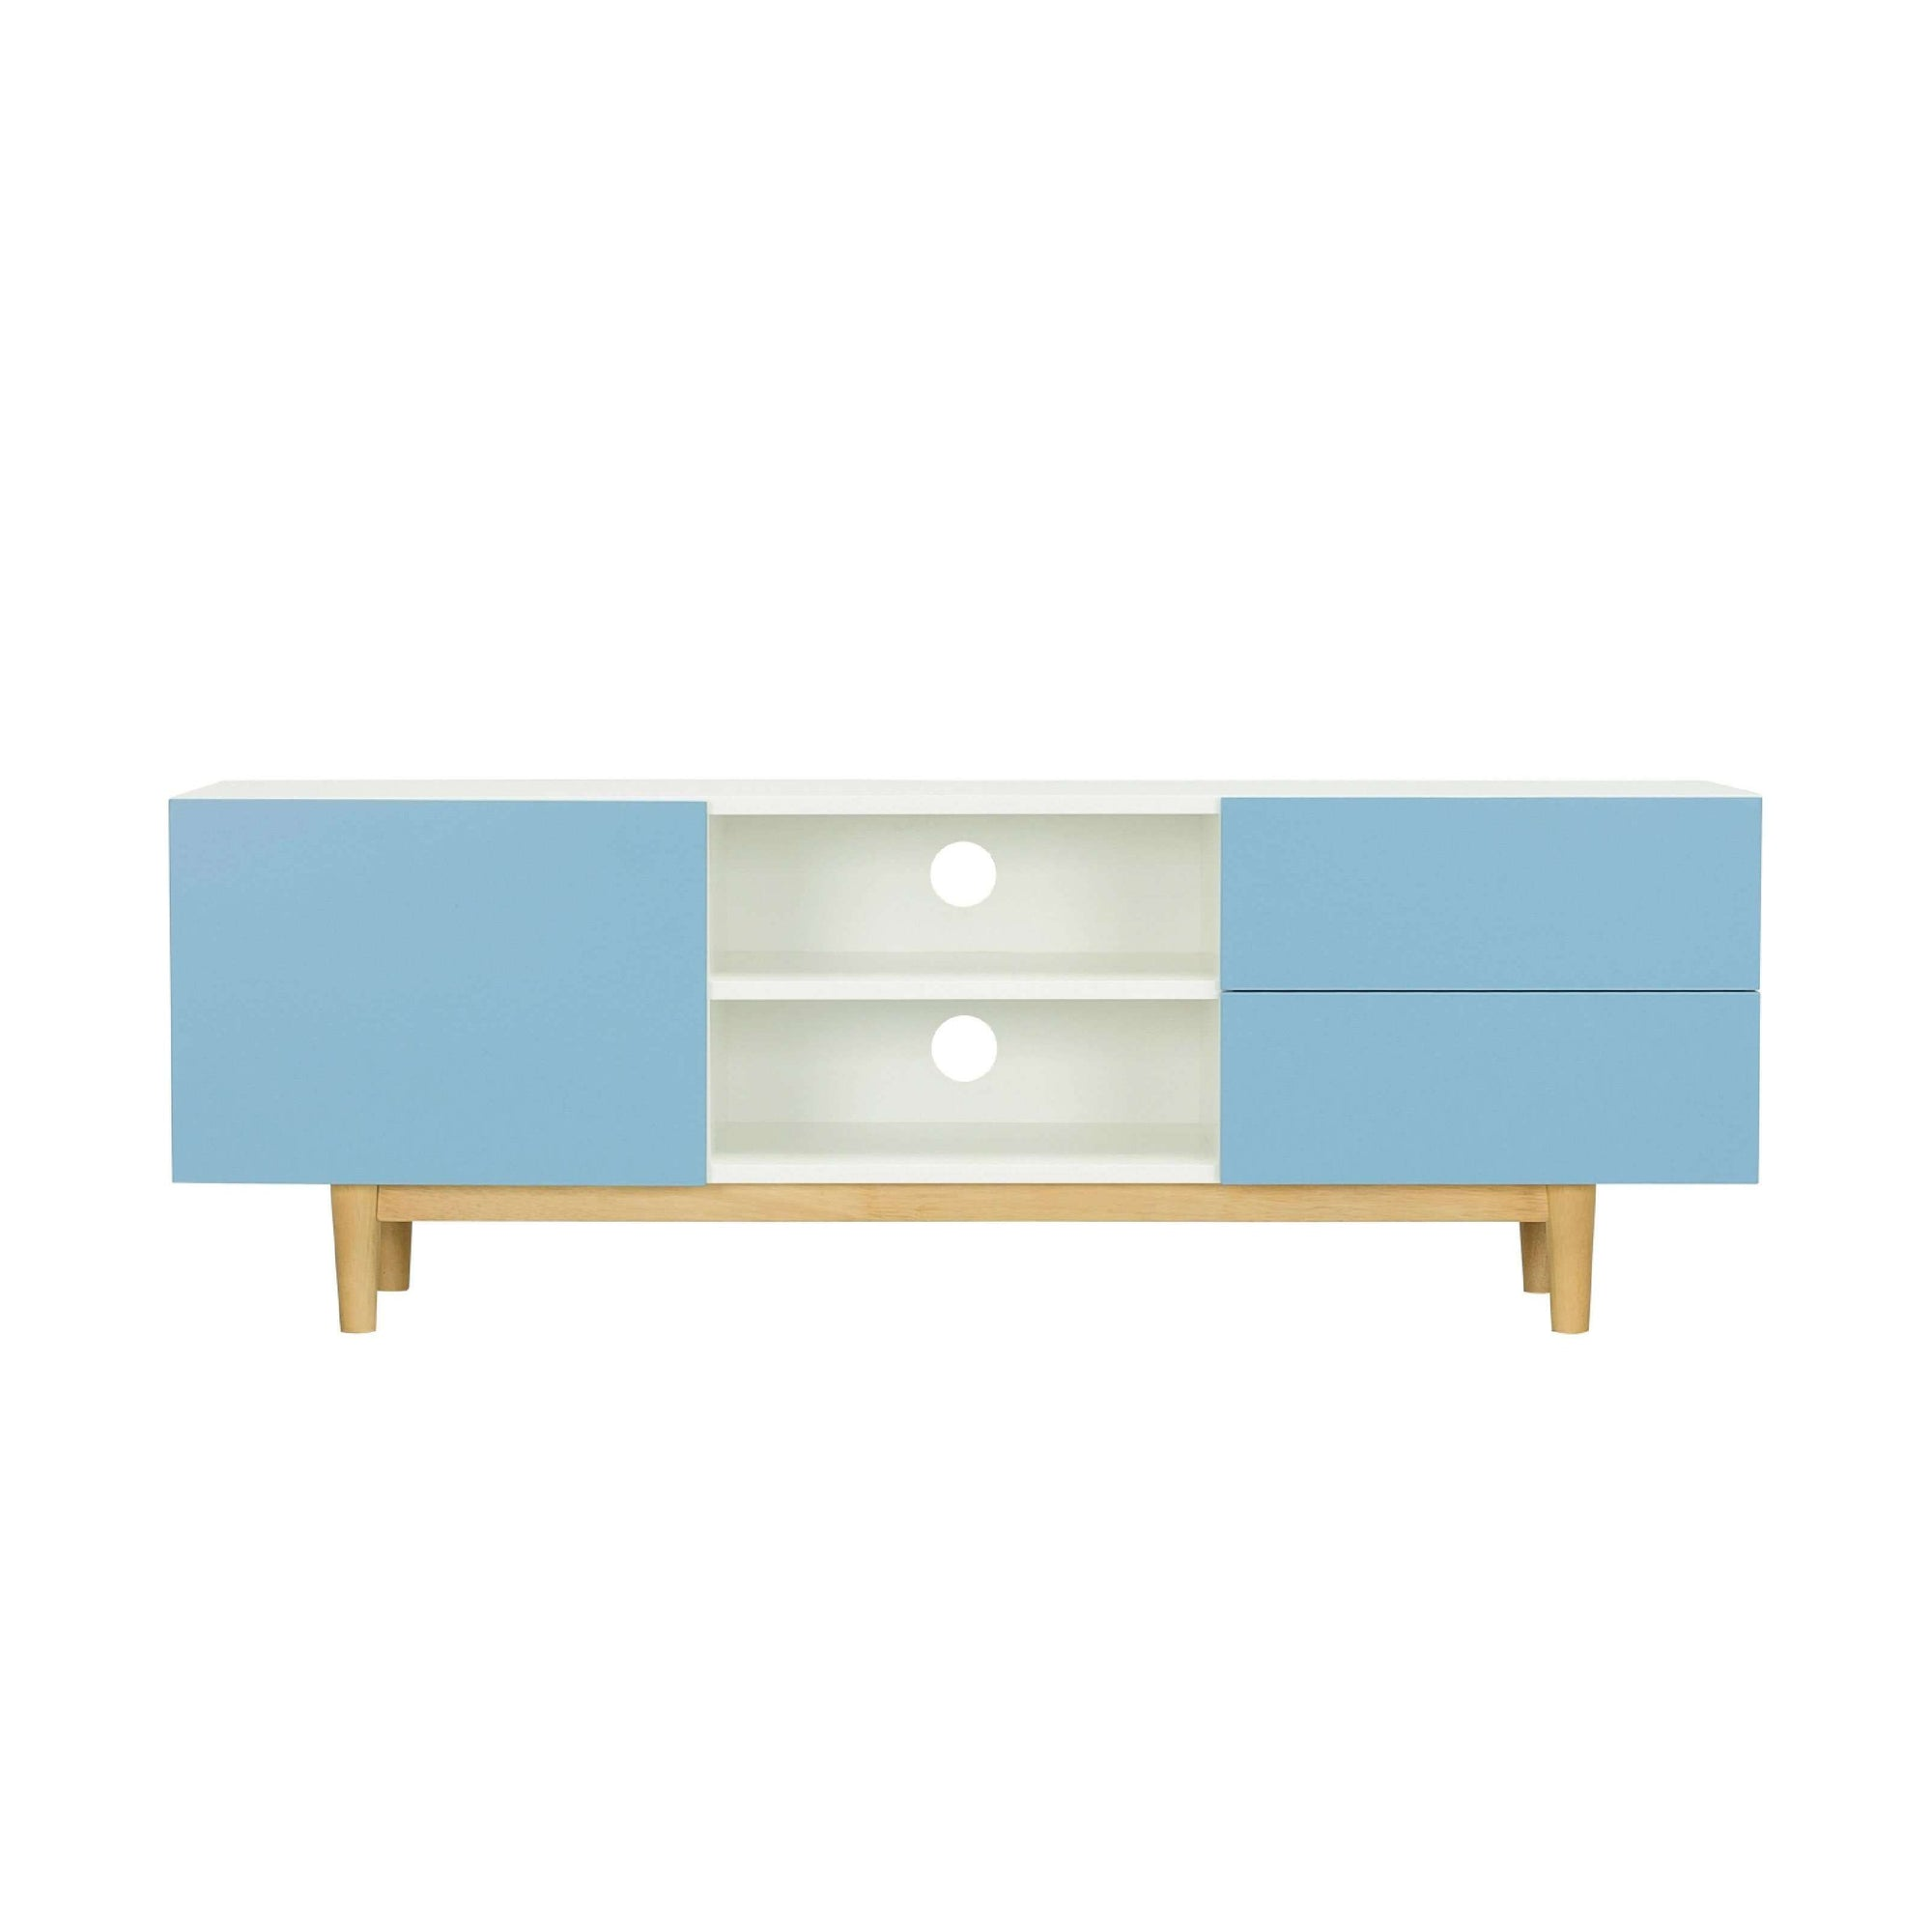 POTTER TV Cabinet On Natural Colour Leg, White Lacquered Body And Dust Blue Lacquered Door